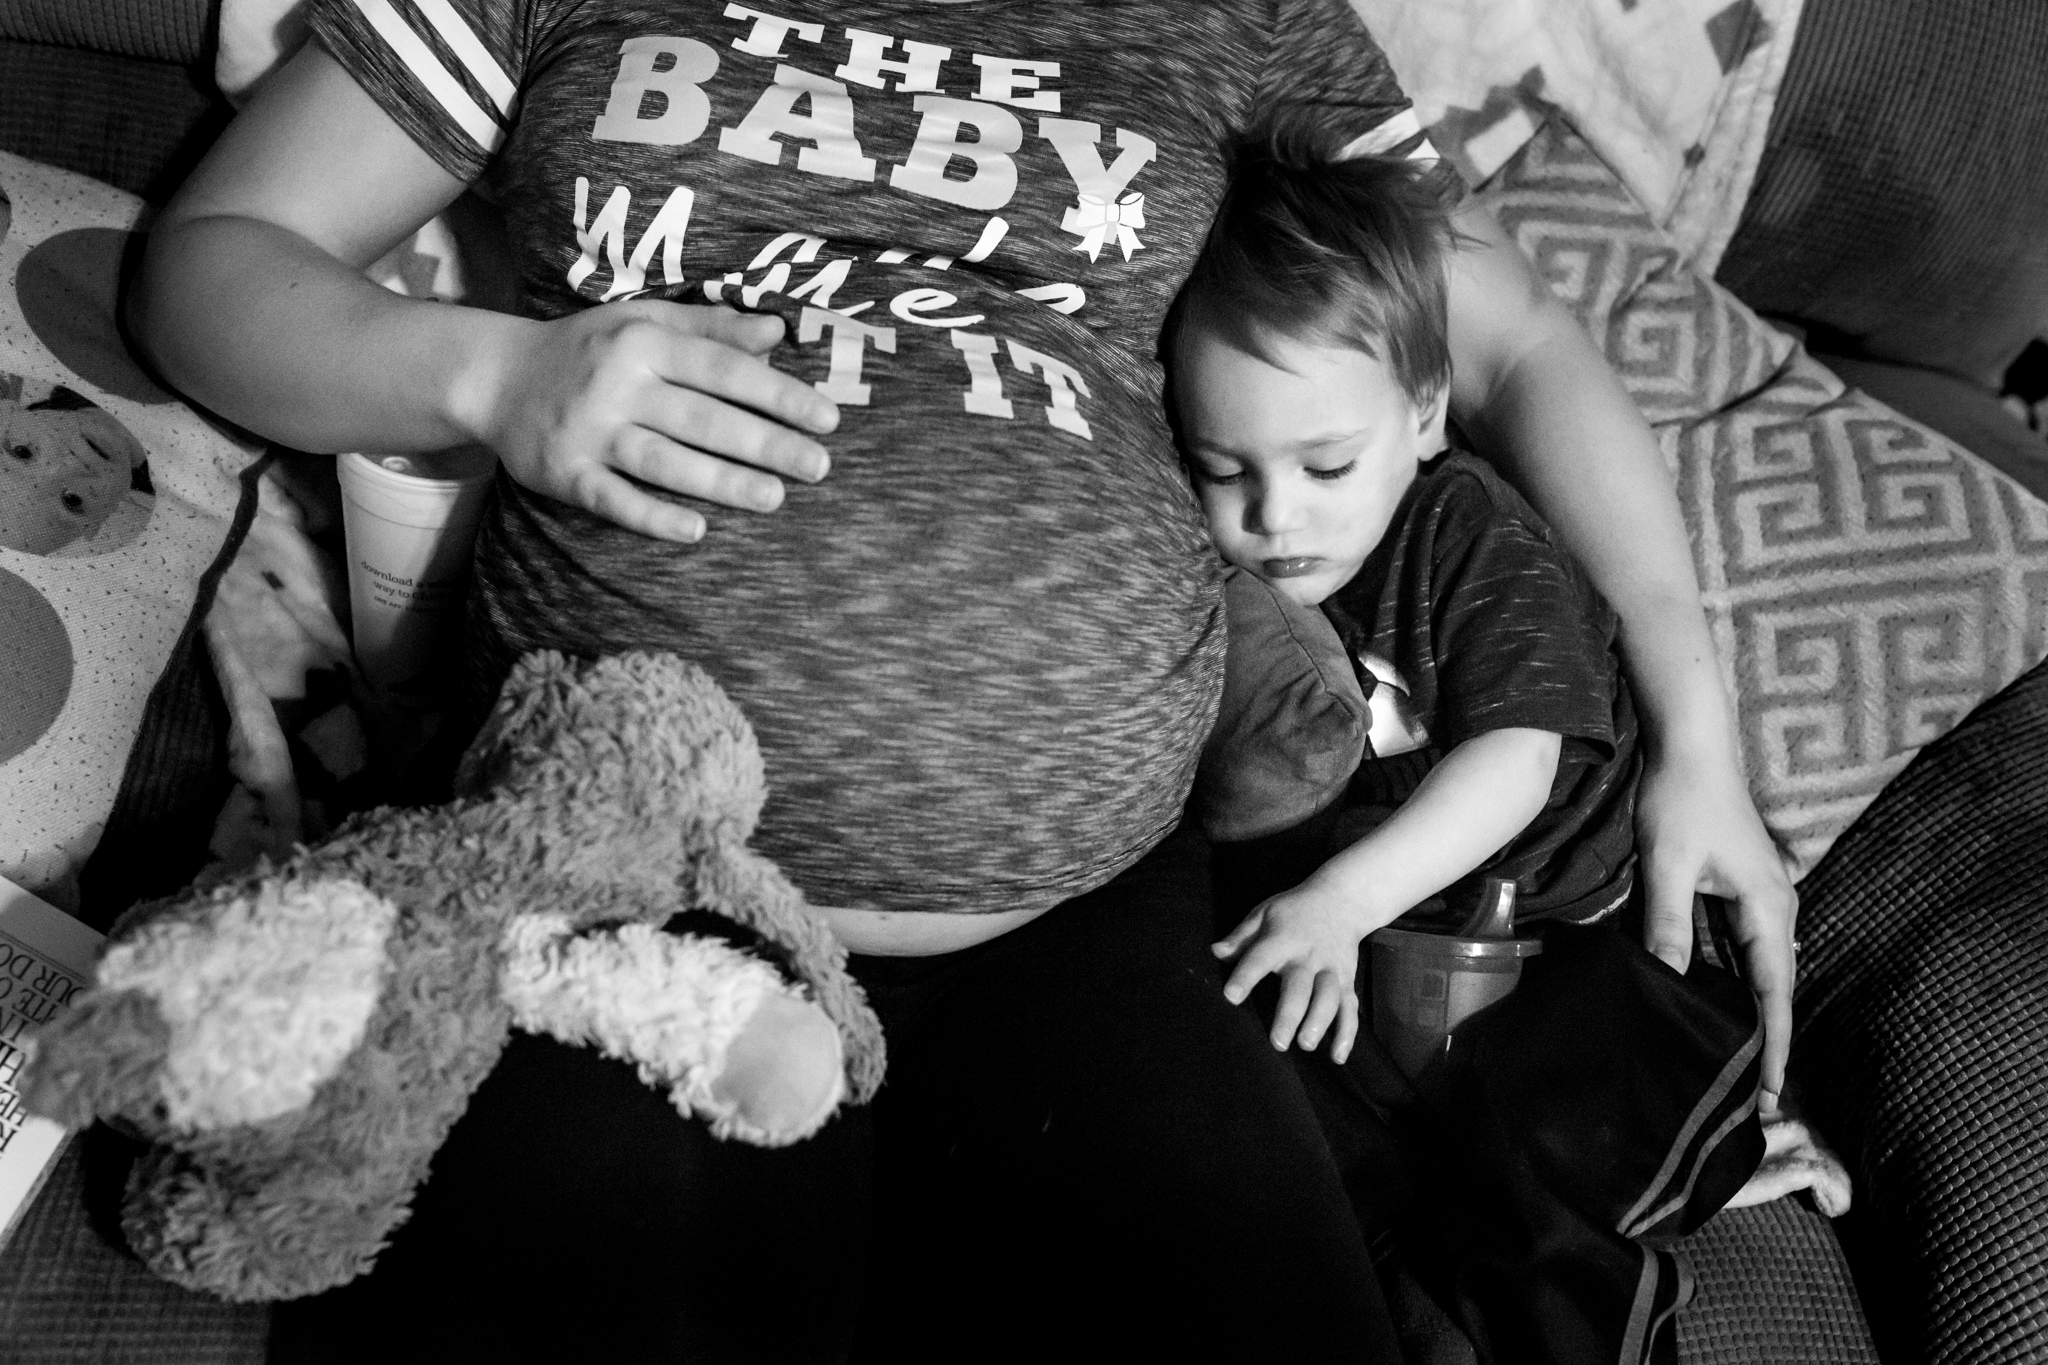 Lawren Rose Photography takes a photo of a 2 year old boy cuddling with his Mom's pregnant belly